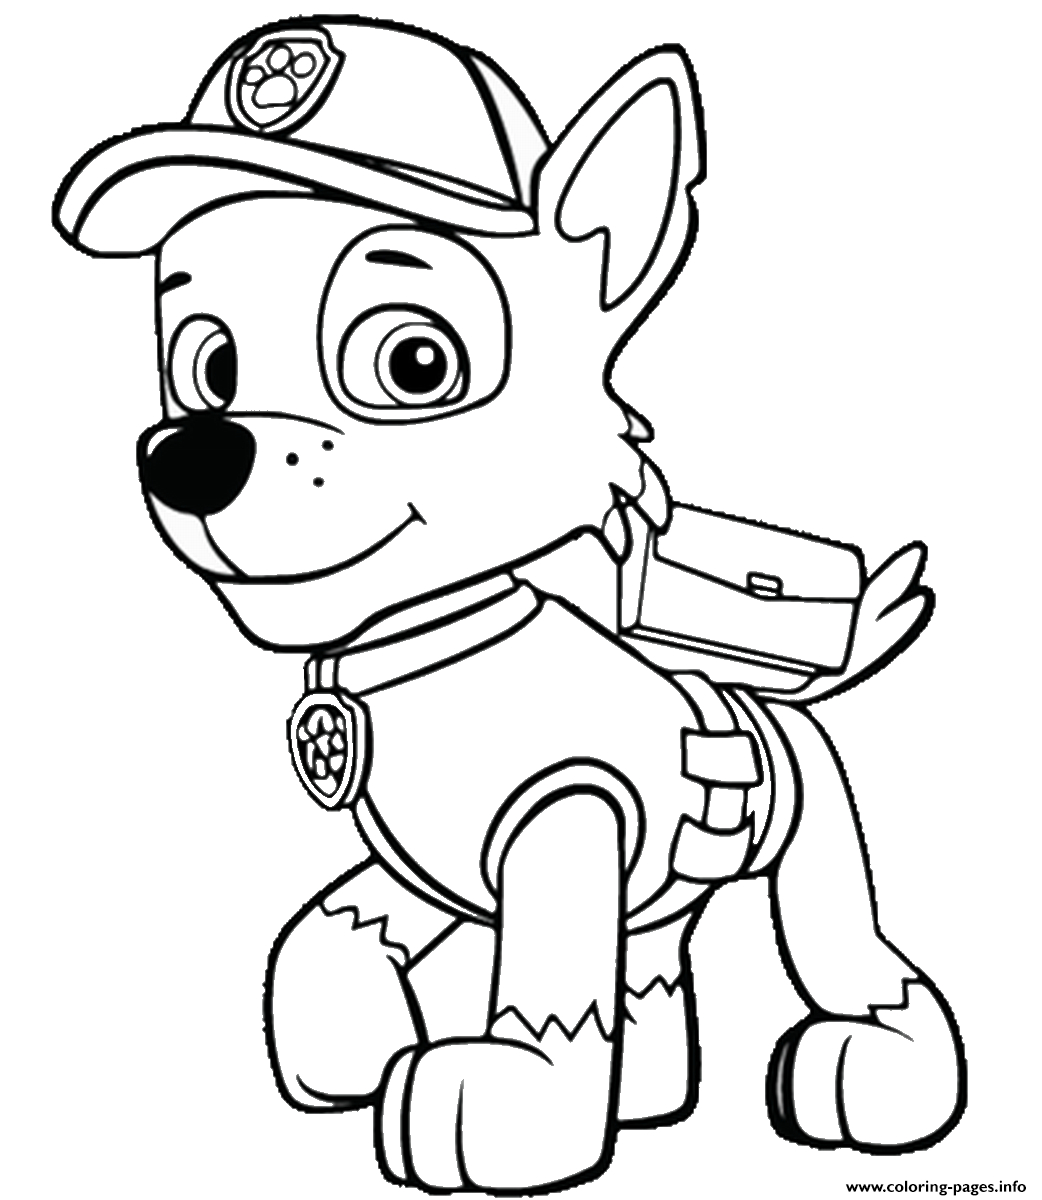 Free Paw Patrol Coloring Pages - Happiness Is Homemade - Free Printable Paw Patrol Coloring Pages